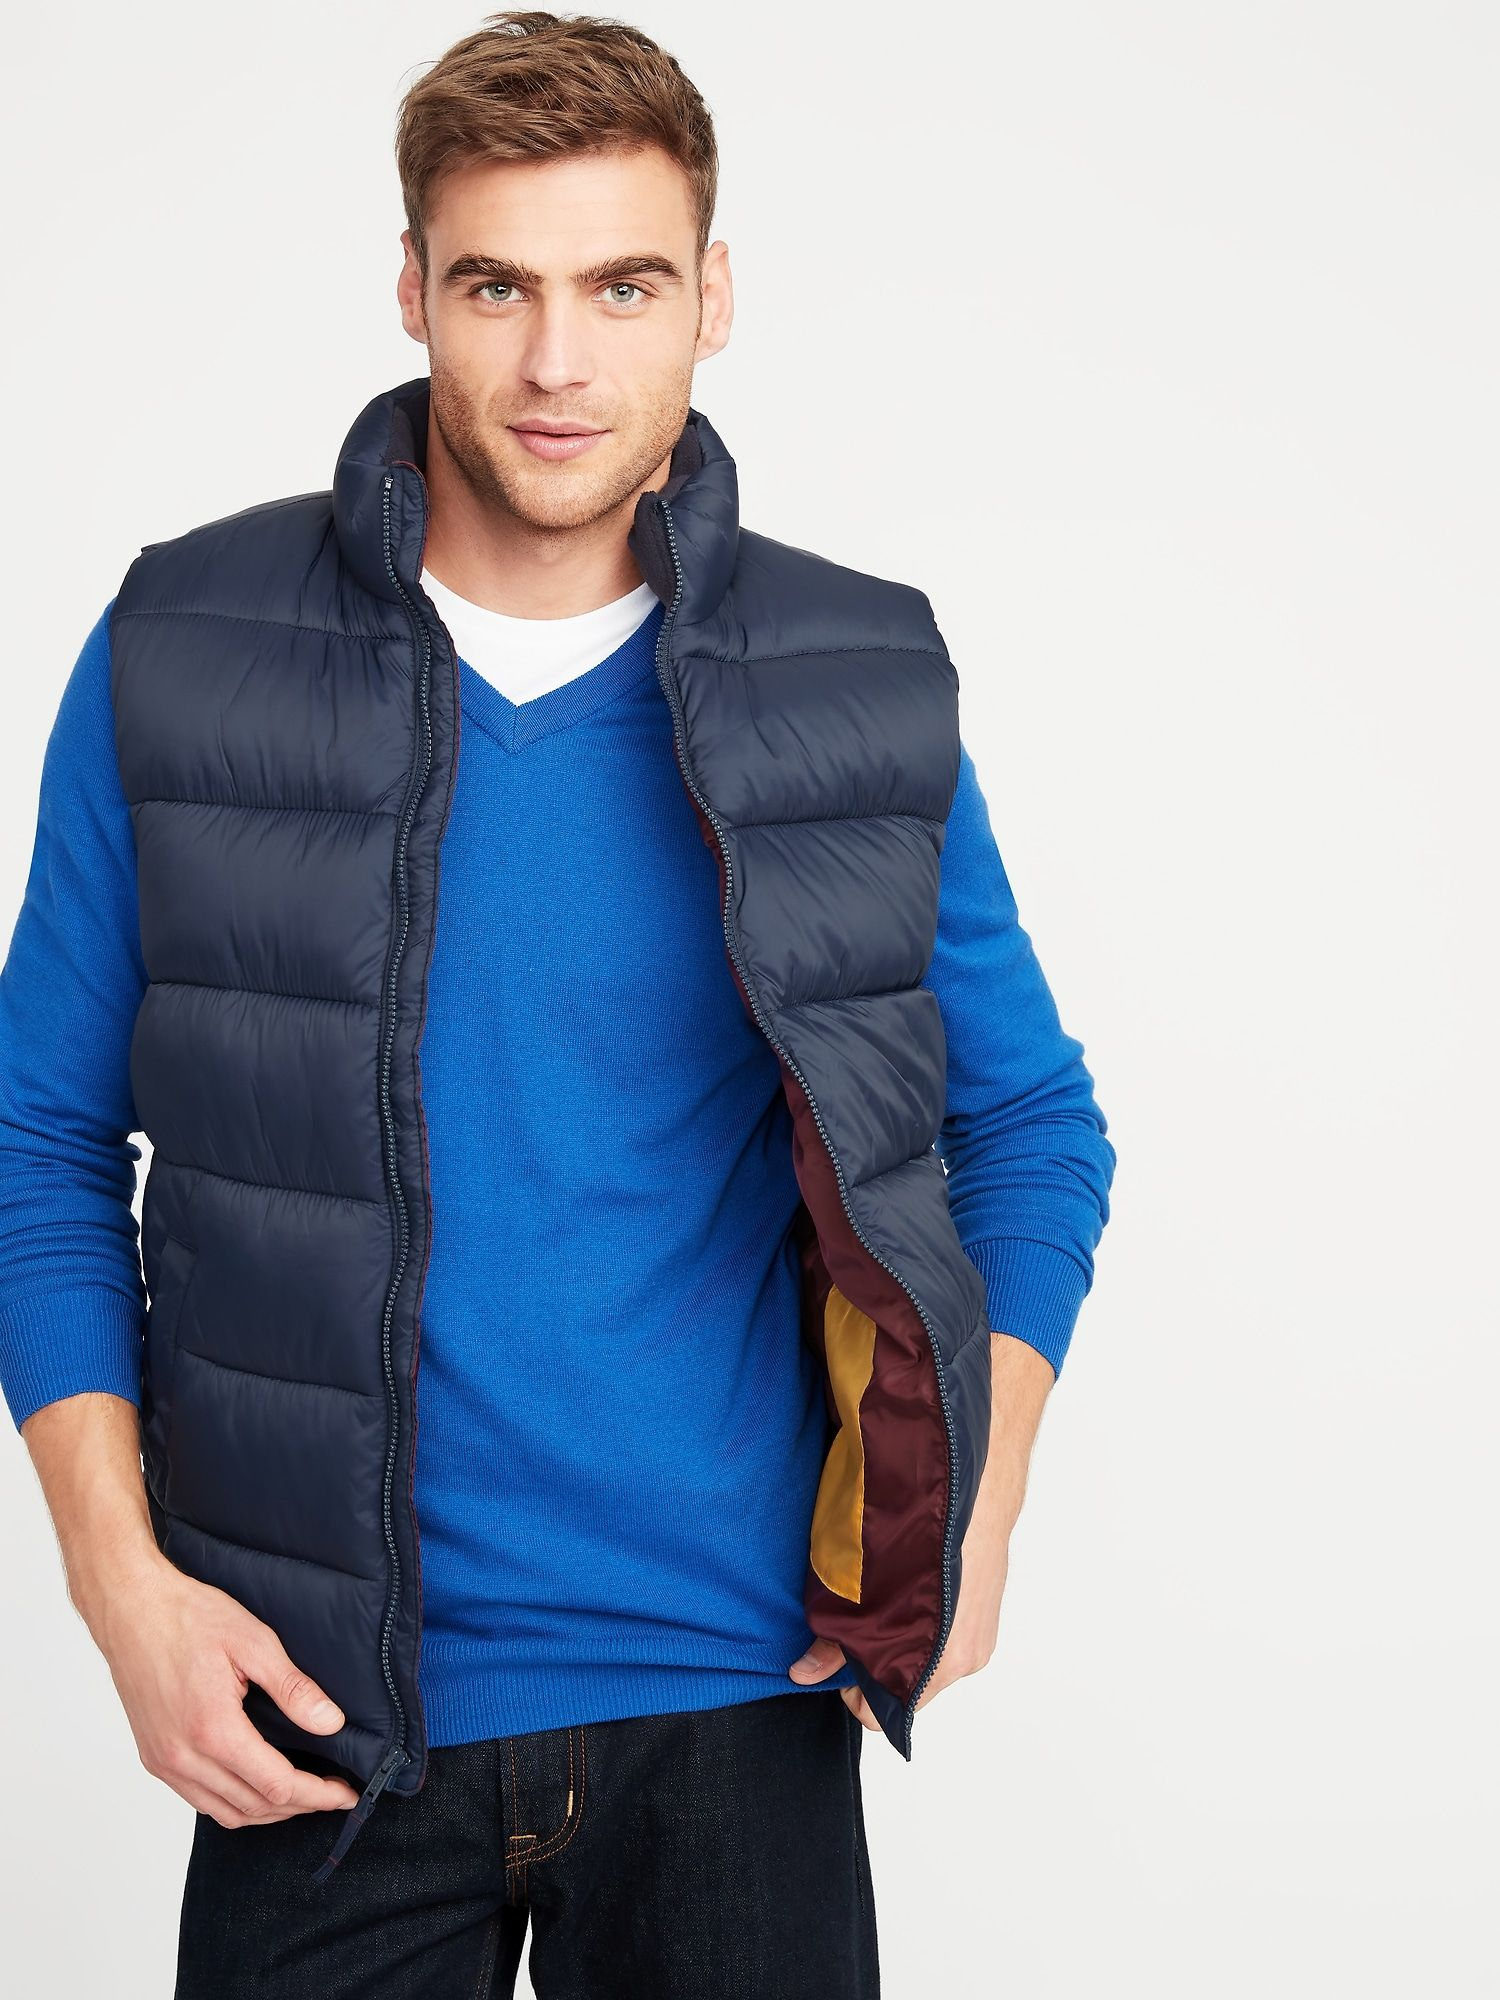 Frost Free Puffer Vest For Men Old Navy Coupon Old Navy Men Old Navy [ 2000 x 1500 Pixel ]